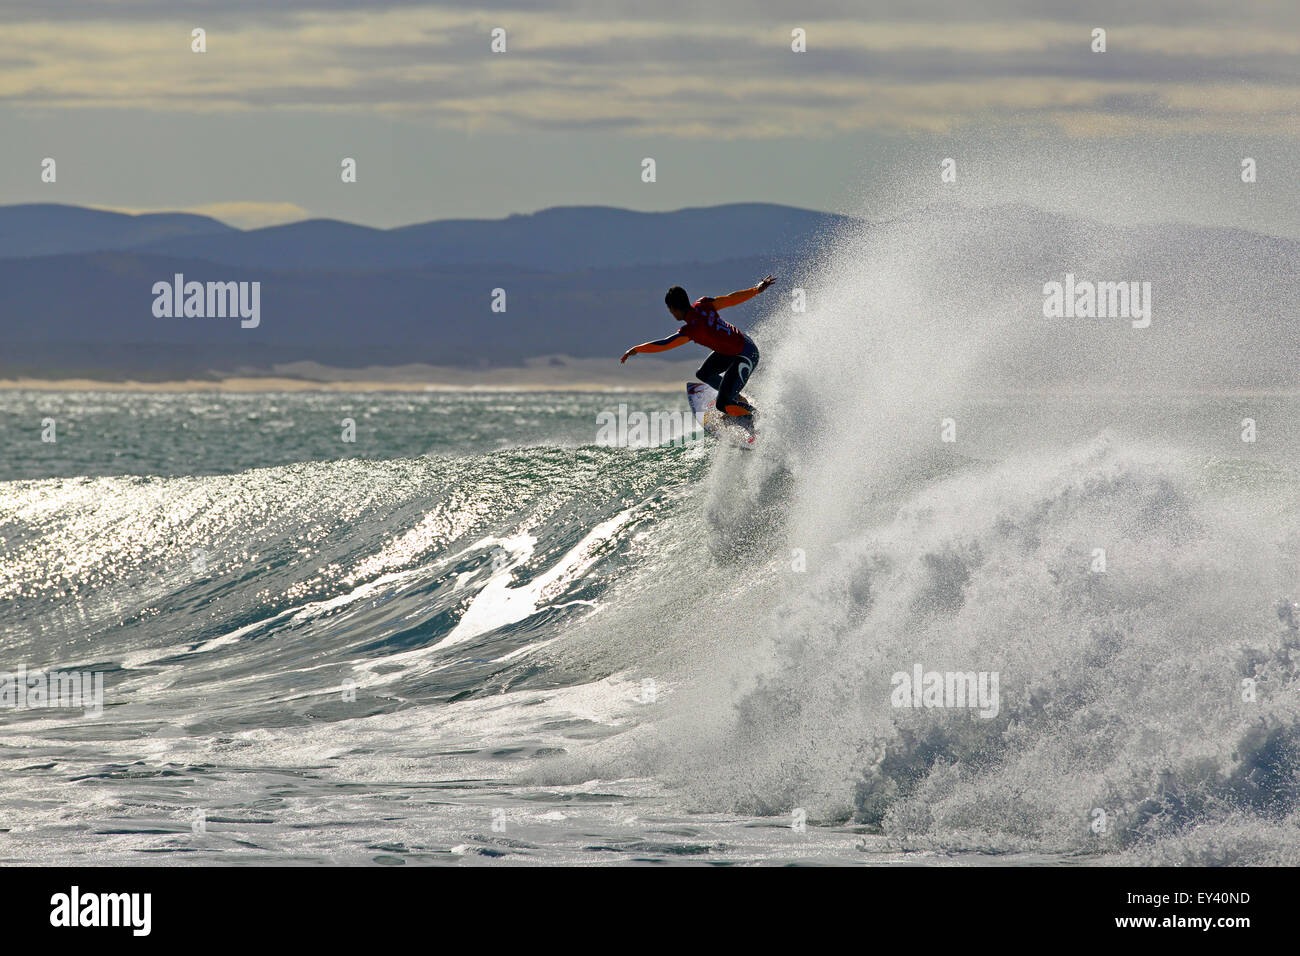 Brazilian surfer and former world champion, Gabriel Medina surfing a heat during the 2015 Jeffreys Bay Open, South - Stock Image